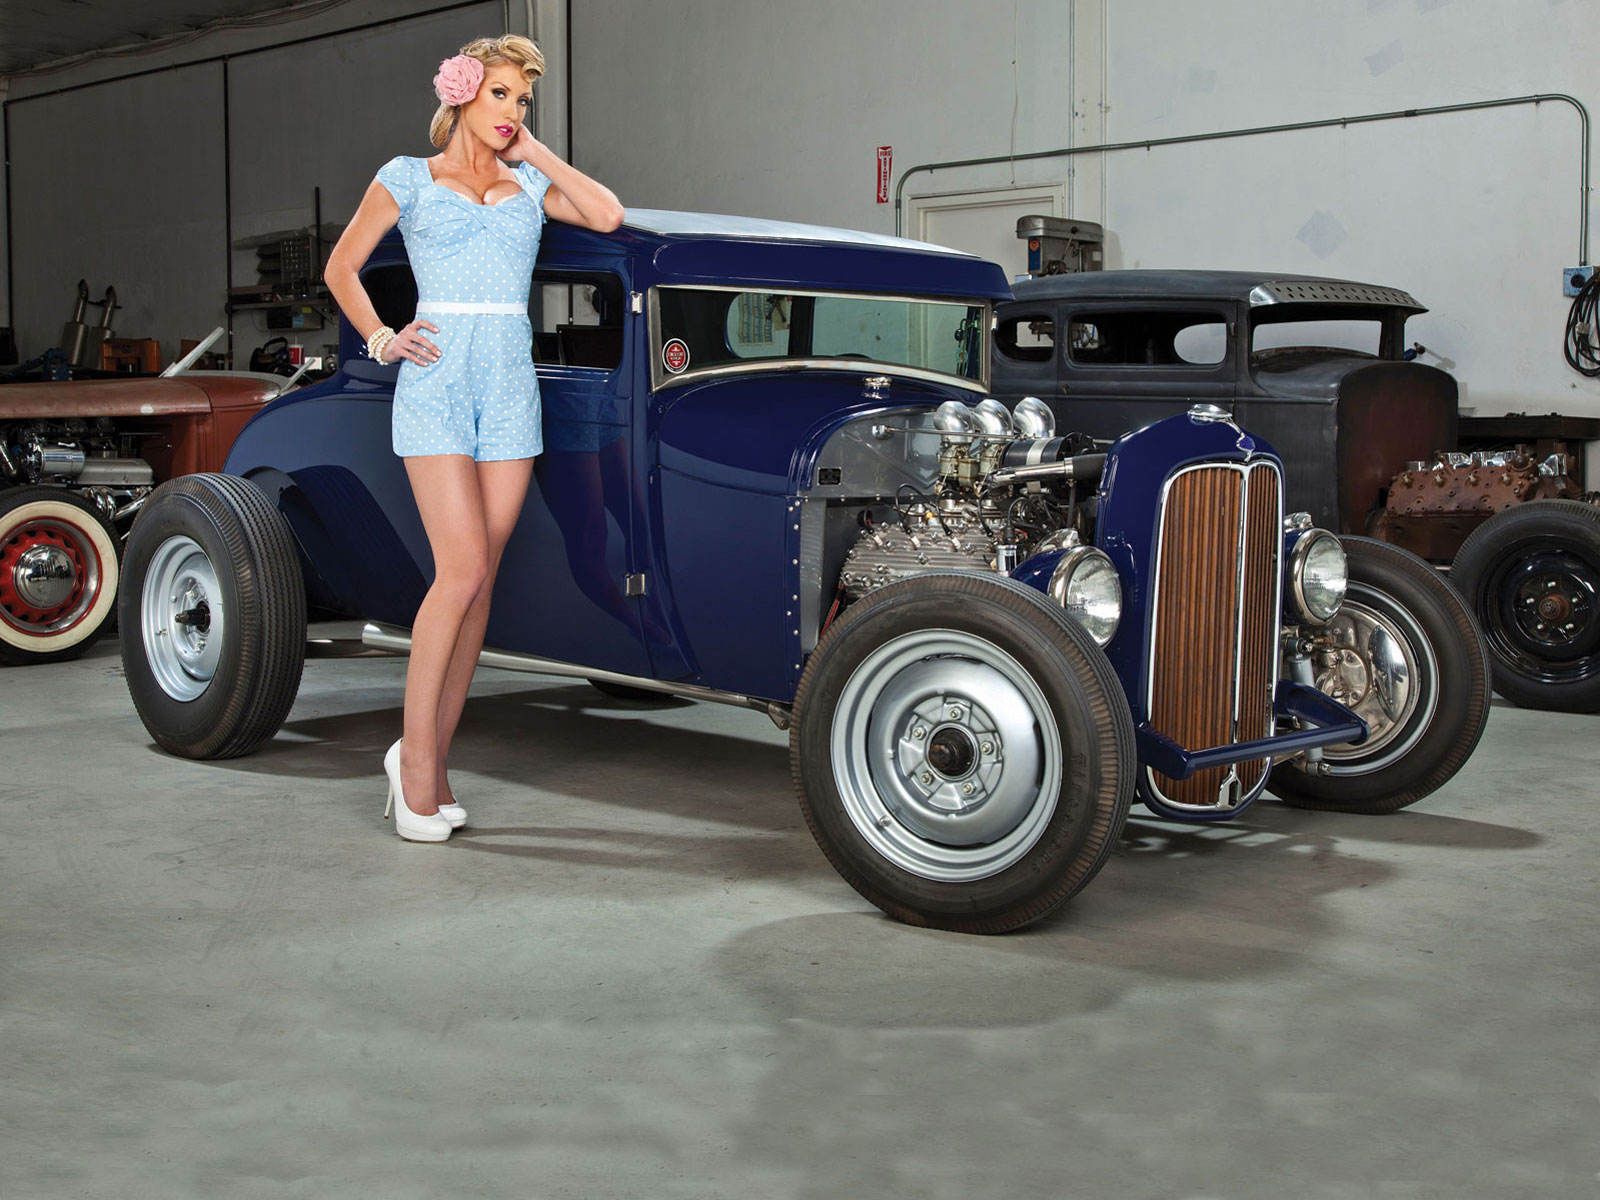 1928 Ford Model A Wallpapers Vehicles Hq 1928 Ford Model A Pictures 4k Wallpapers 2019